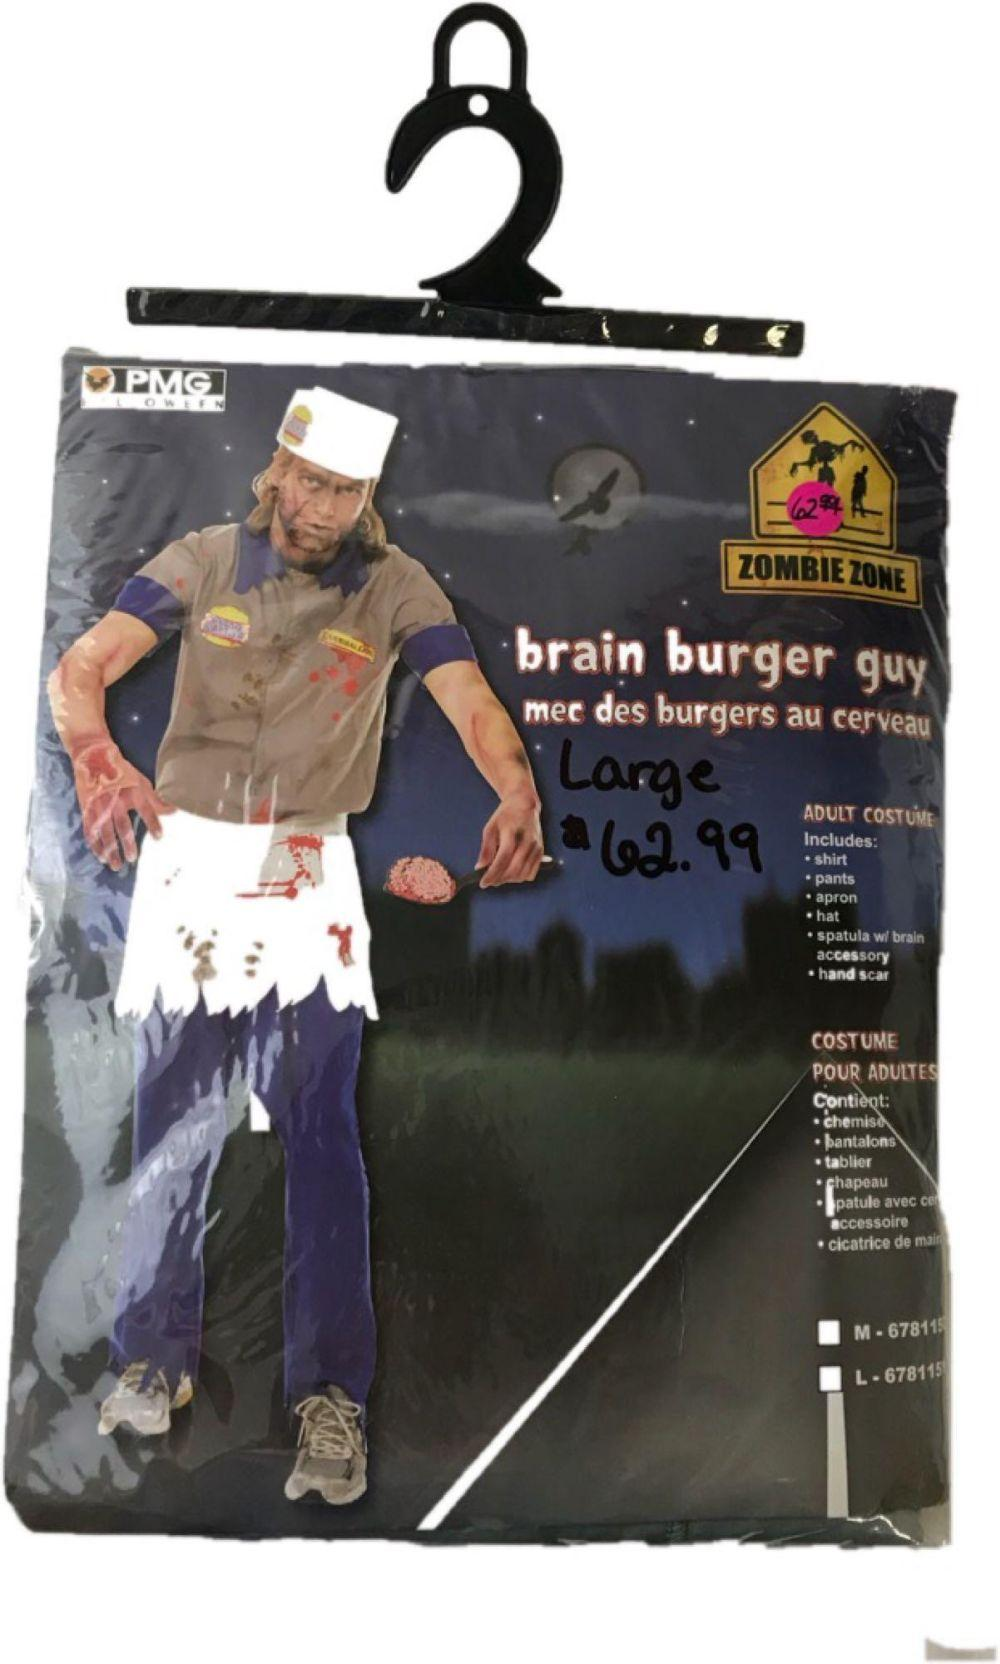 Lot 761: Halloween Costume, Brain Burger Guy, Cannibal Carl from Zombie Zone, NOS